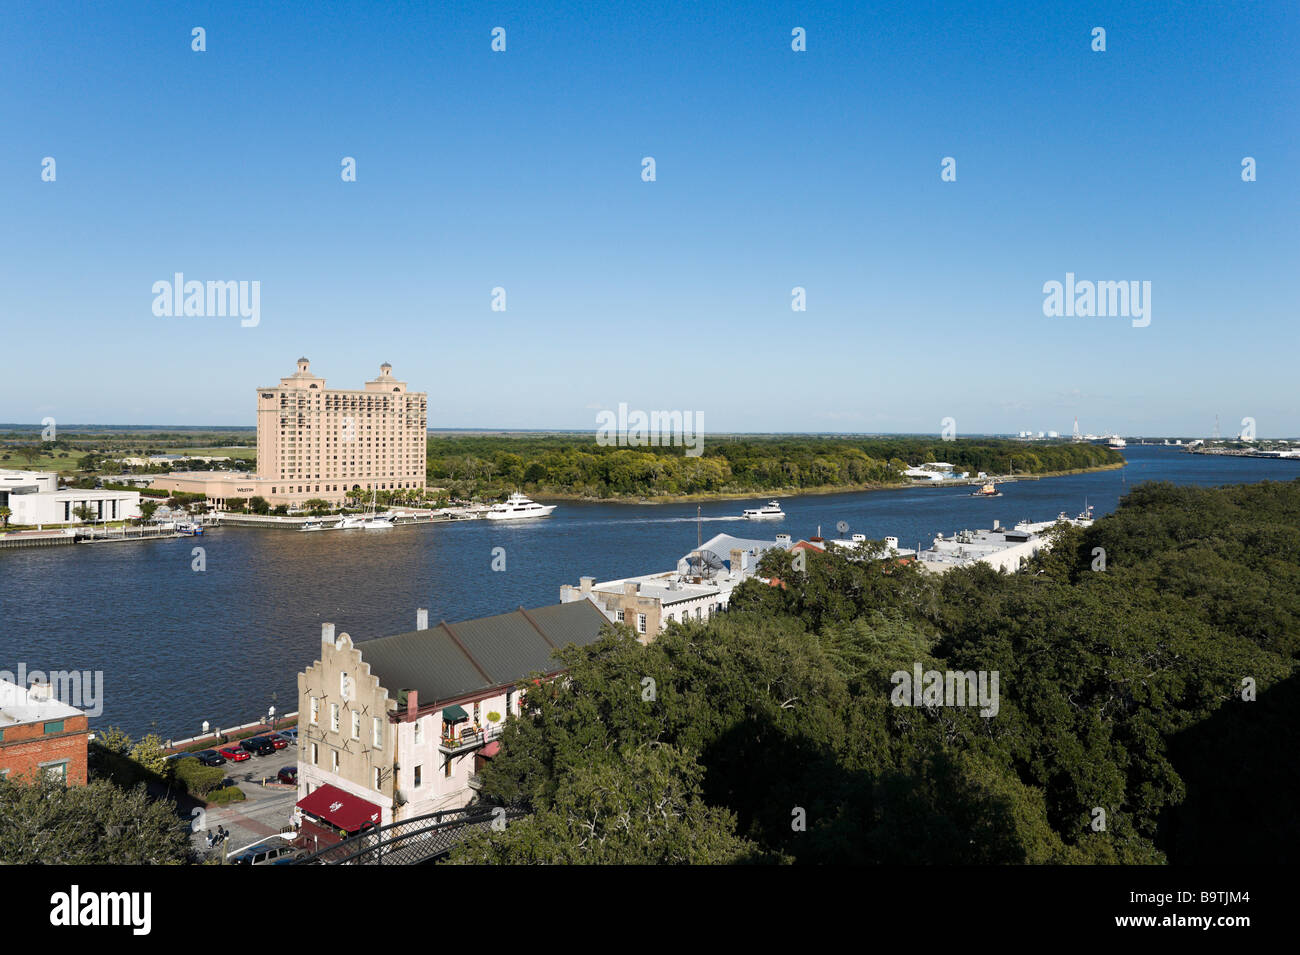 View over the Savannah River from Bay Street with the Westin Resort on the far bank, Savannah, Georgia, USA - Stock Image